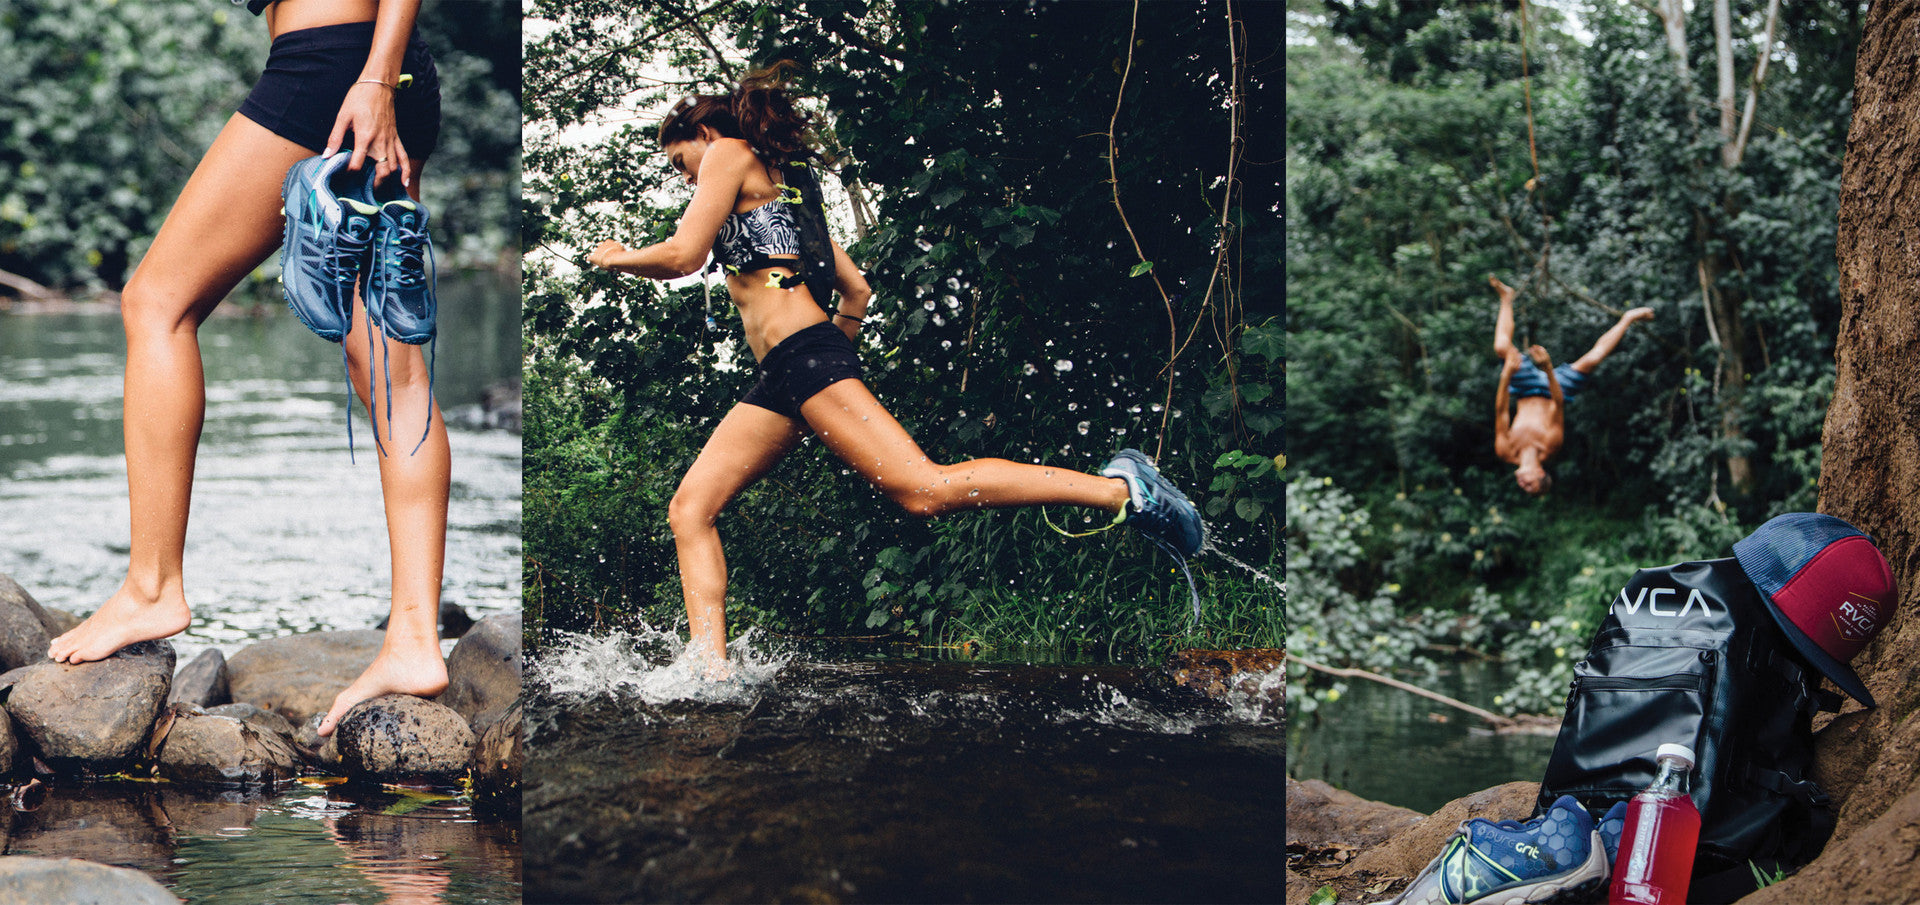 adventure running shoes hike waterfalls Chelsea Yamase